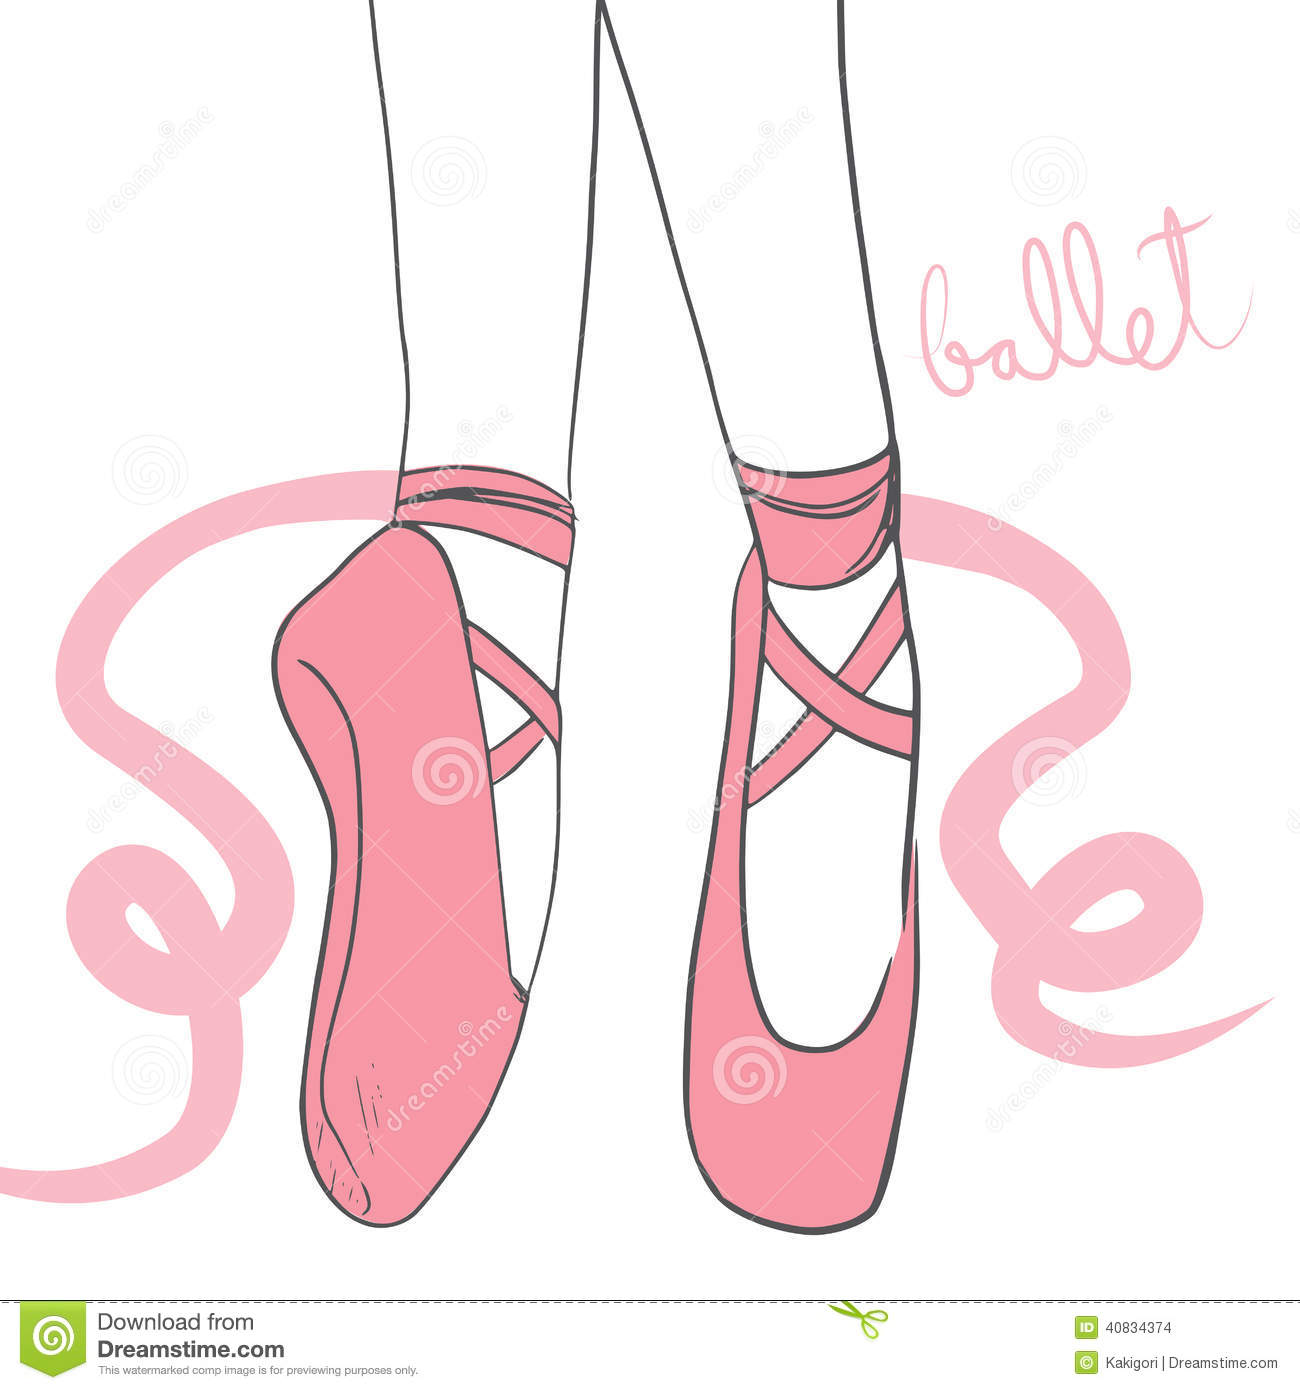 ballerina shoes stock illustrations 1 597 ballerina shoes stock rh dreamstime com ballet pointe shoes cartoon ballet shoes cartoon images